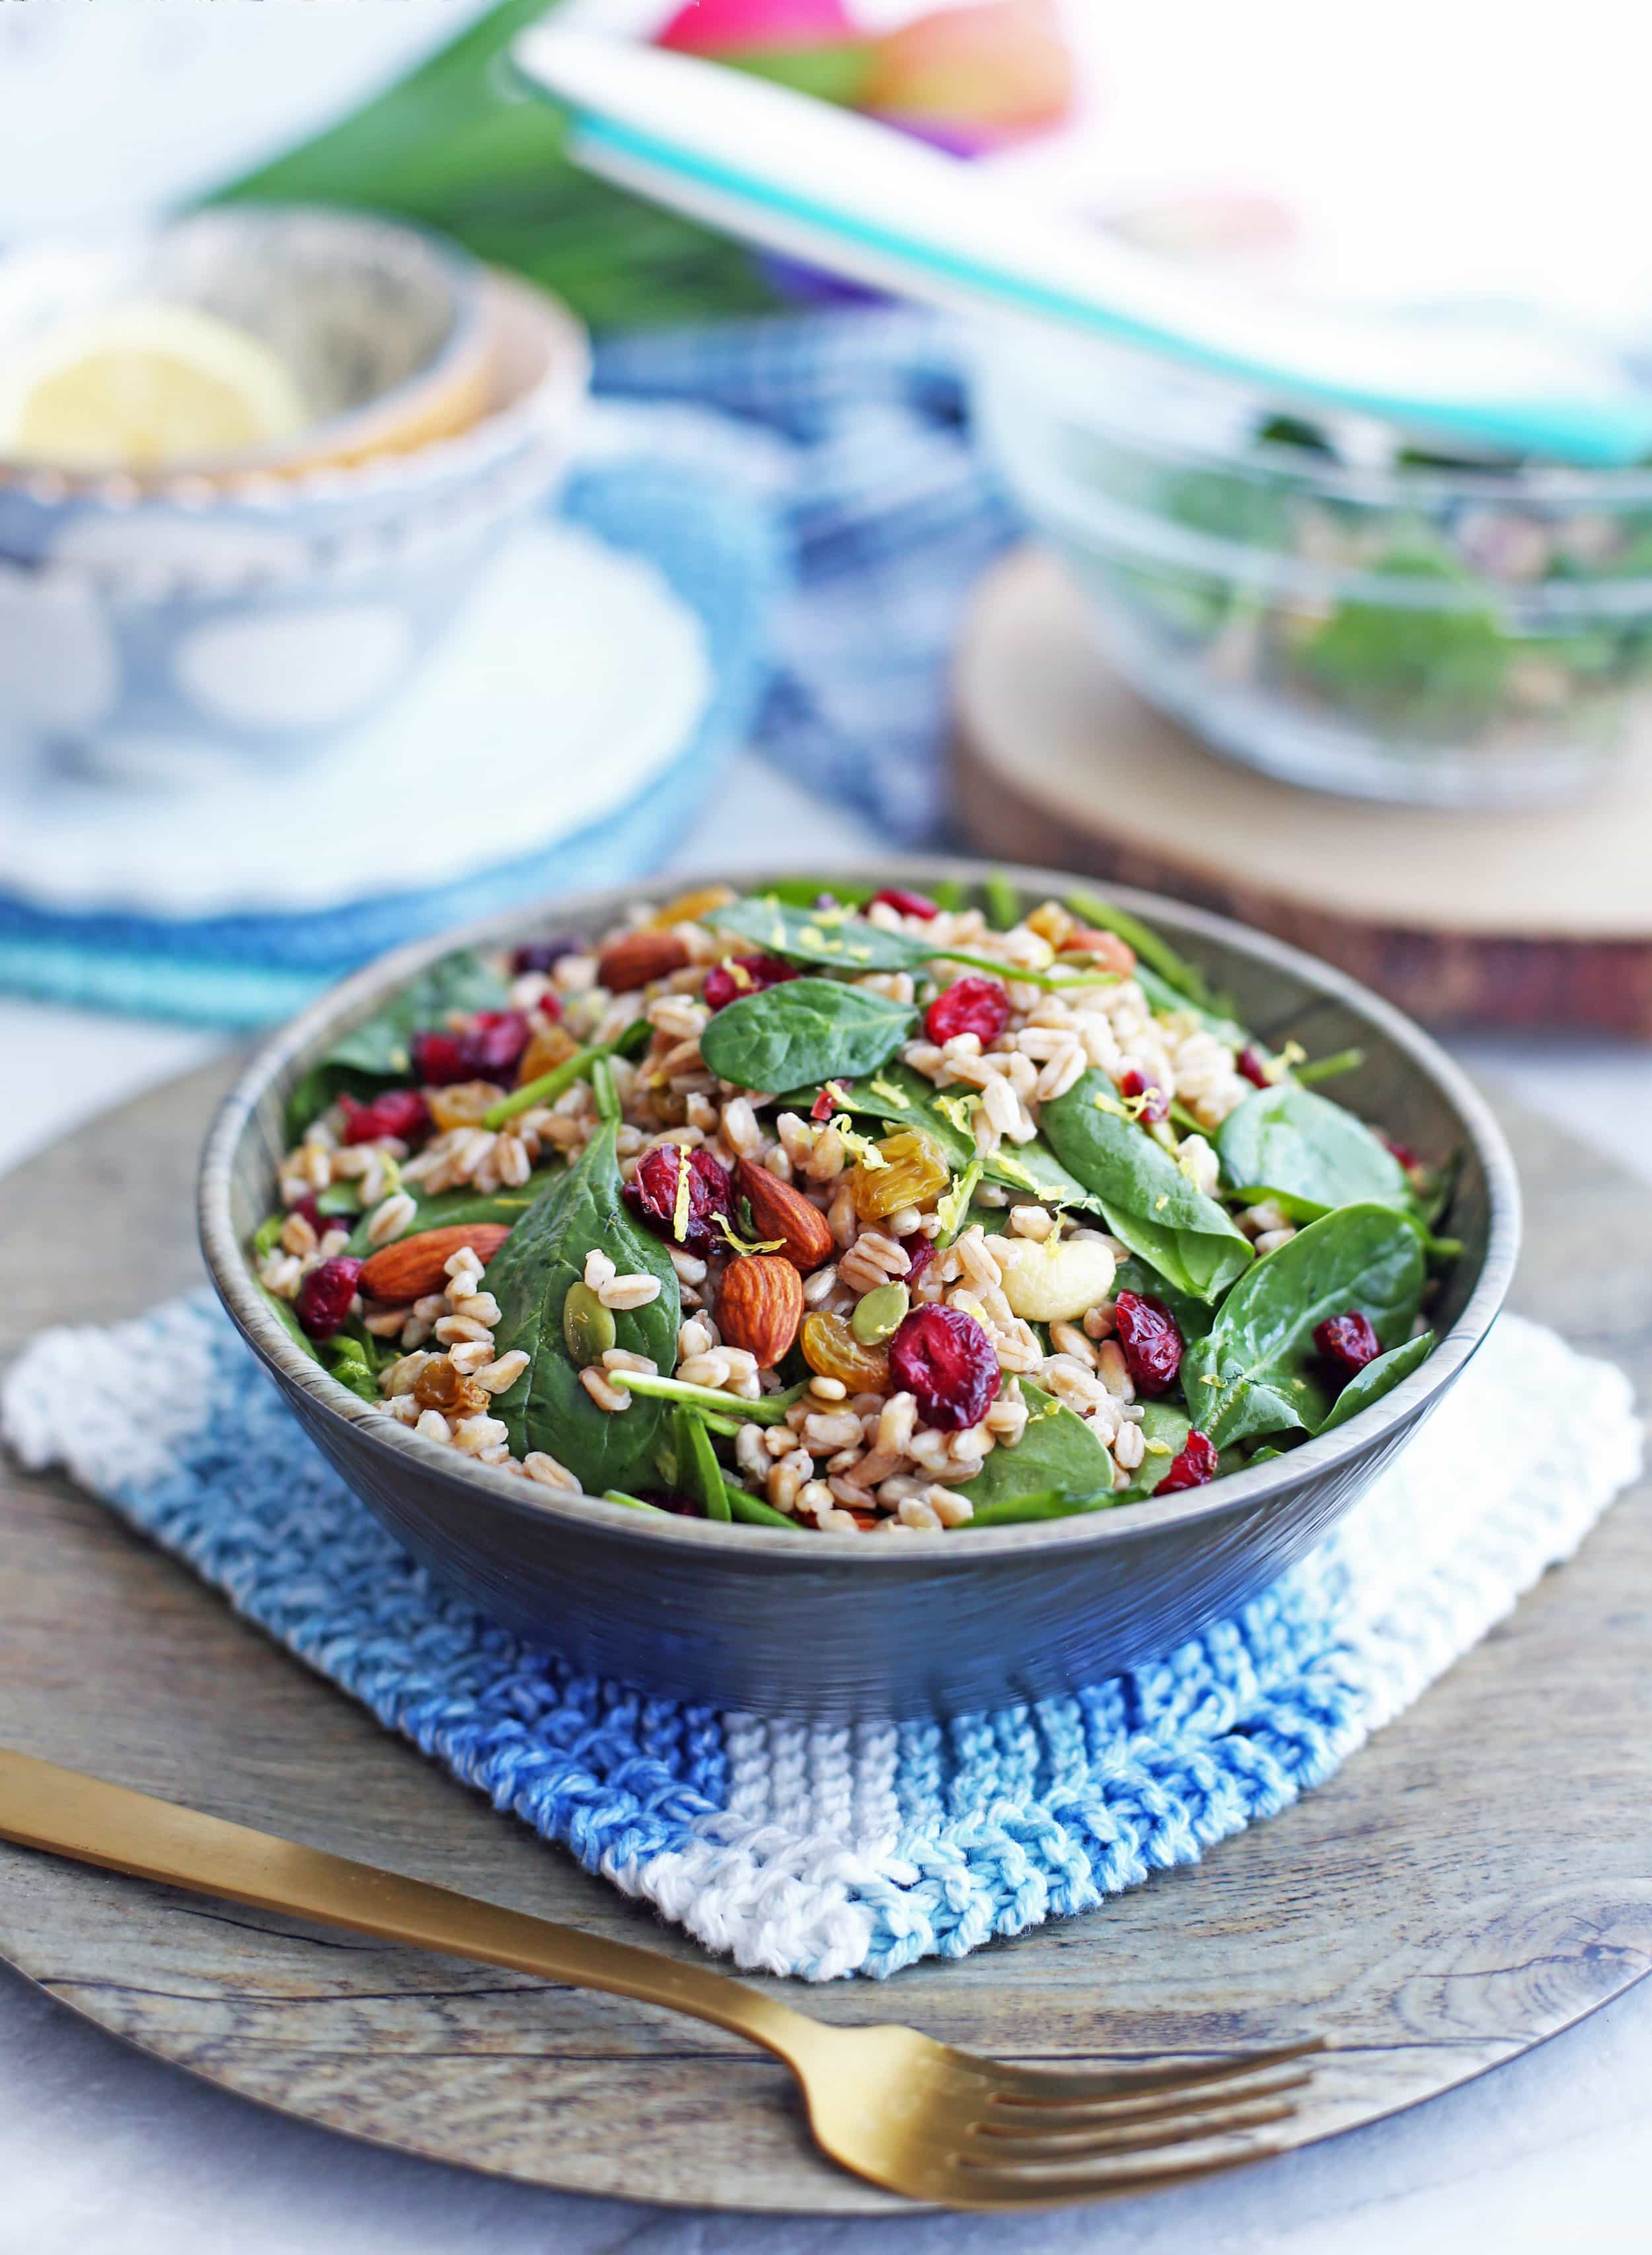 Farro and Spinach Salad with Dried Fruit and Nuts in a wooden bowl;fork in front of the bowl.